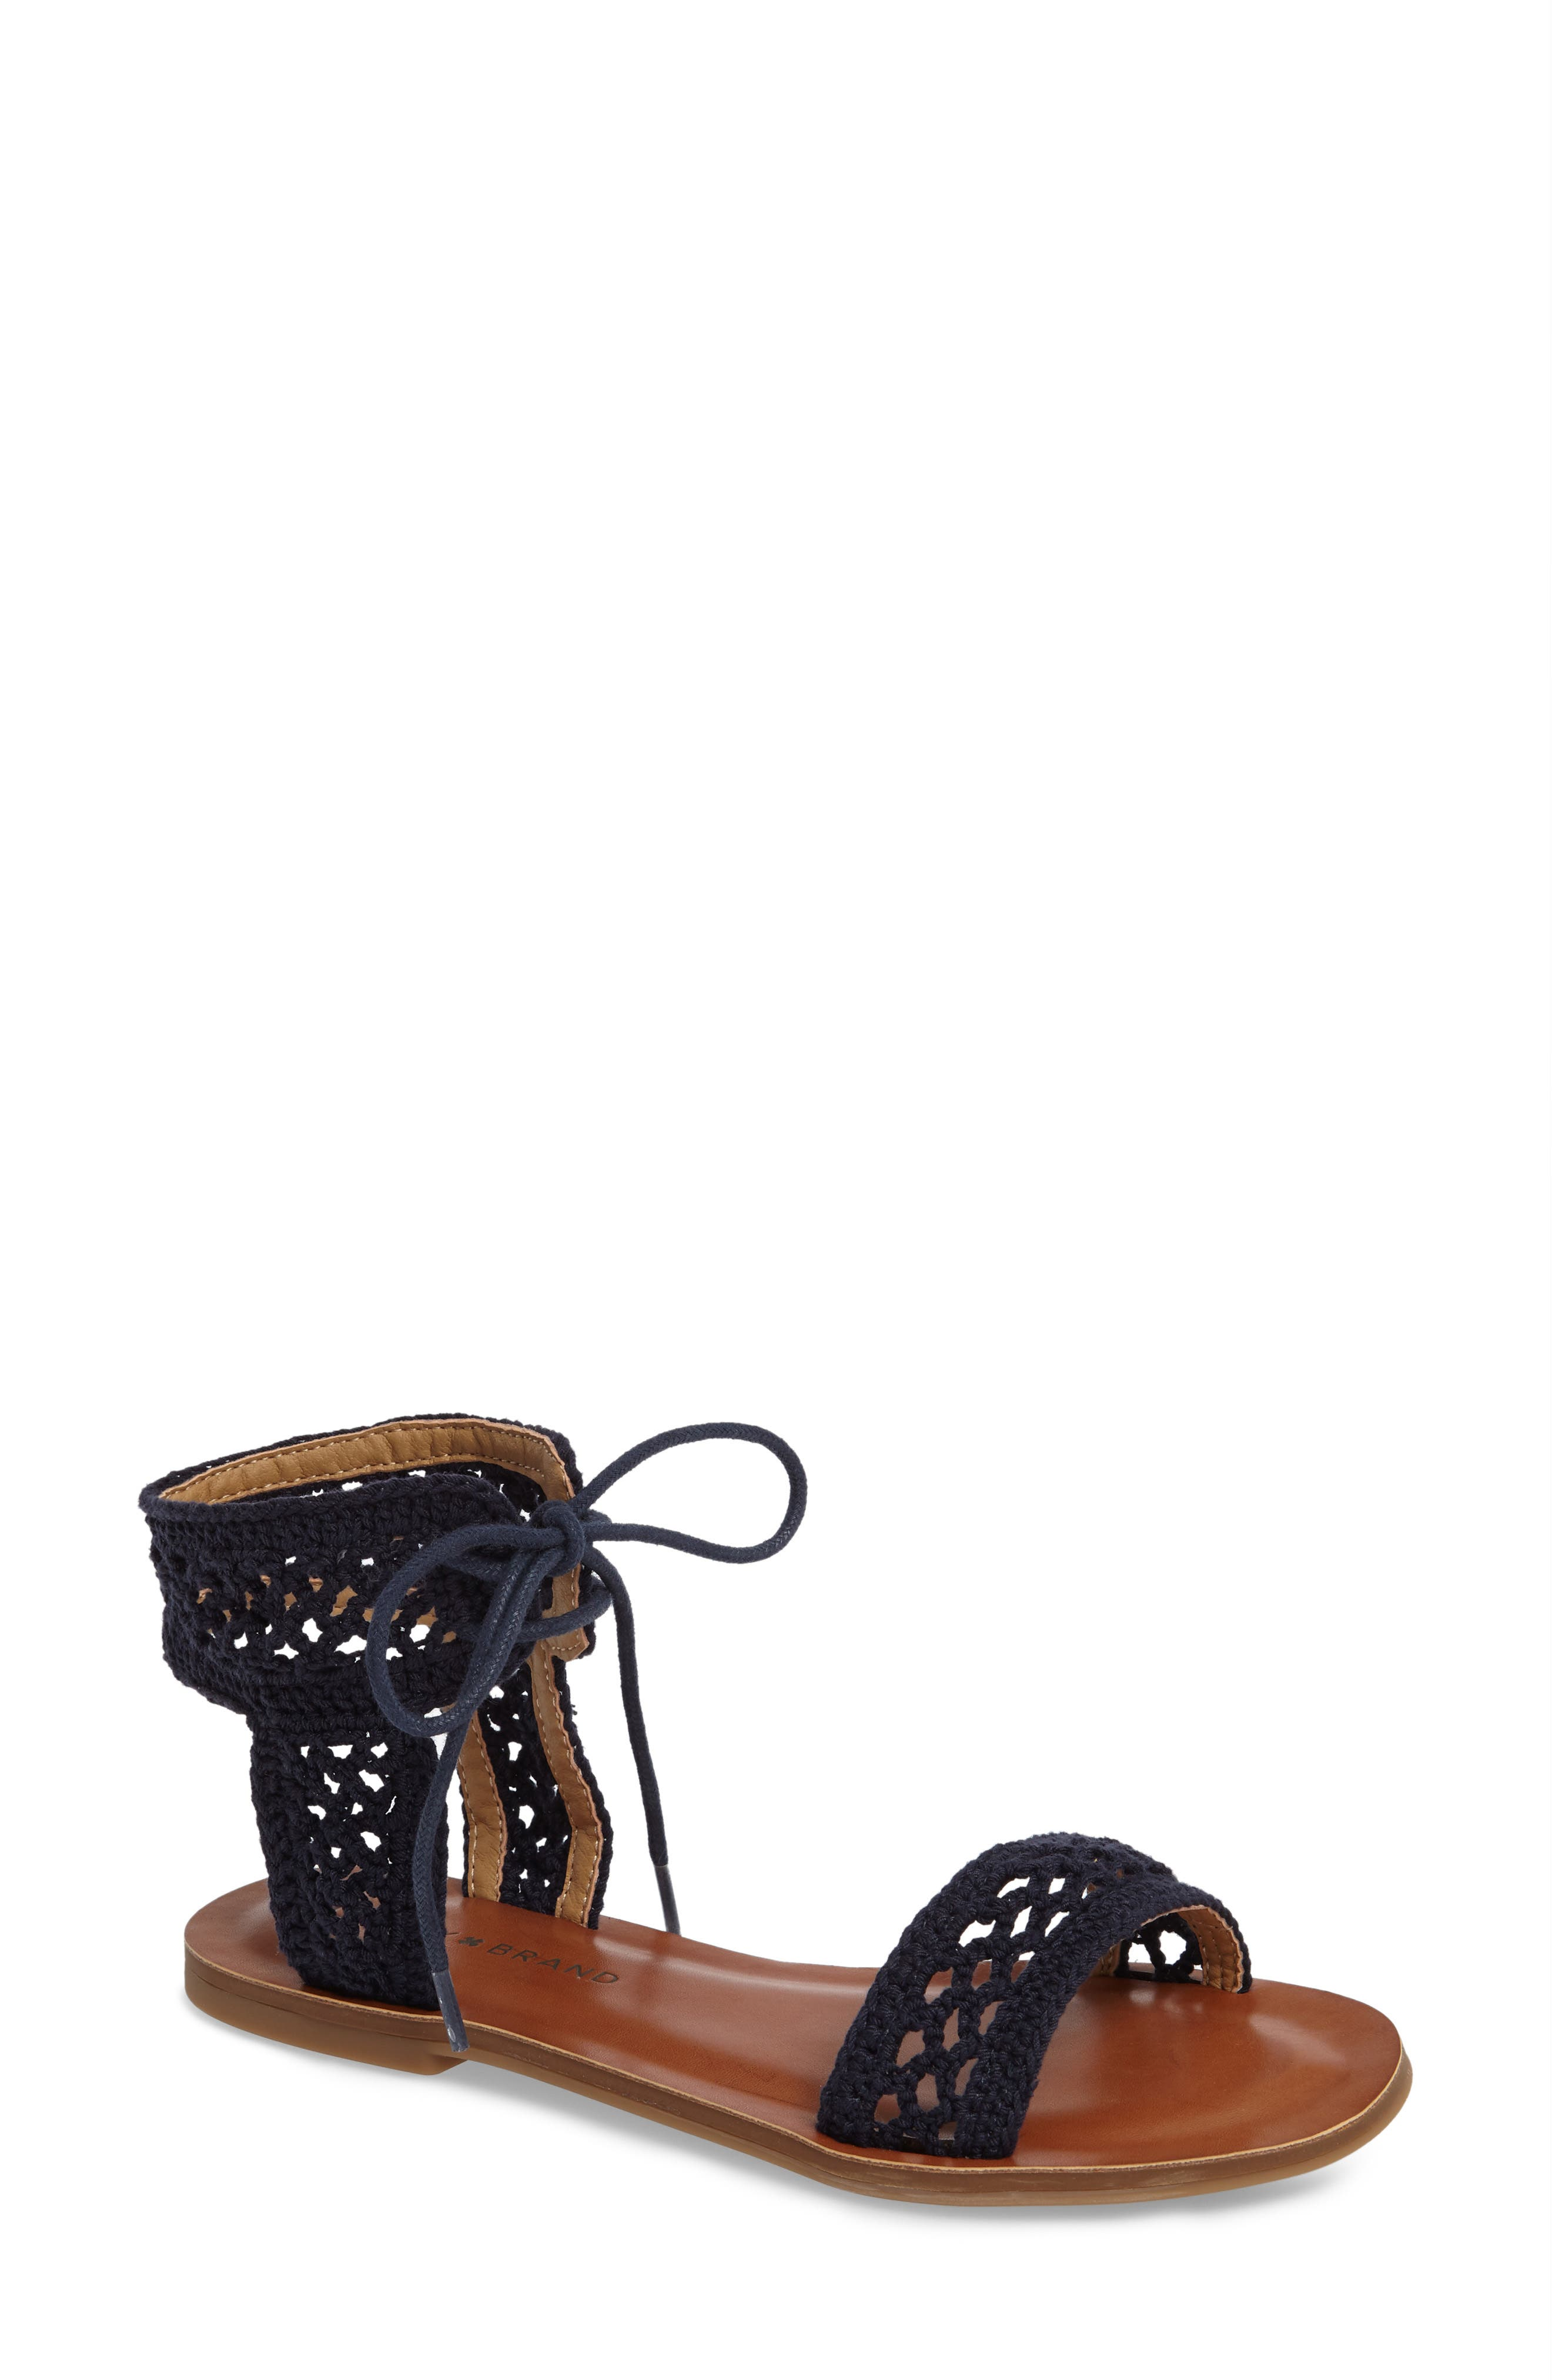 Ariah Ankle Tie Sandal,                         Main,                         color, Moroccan Blue Fabric